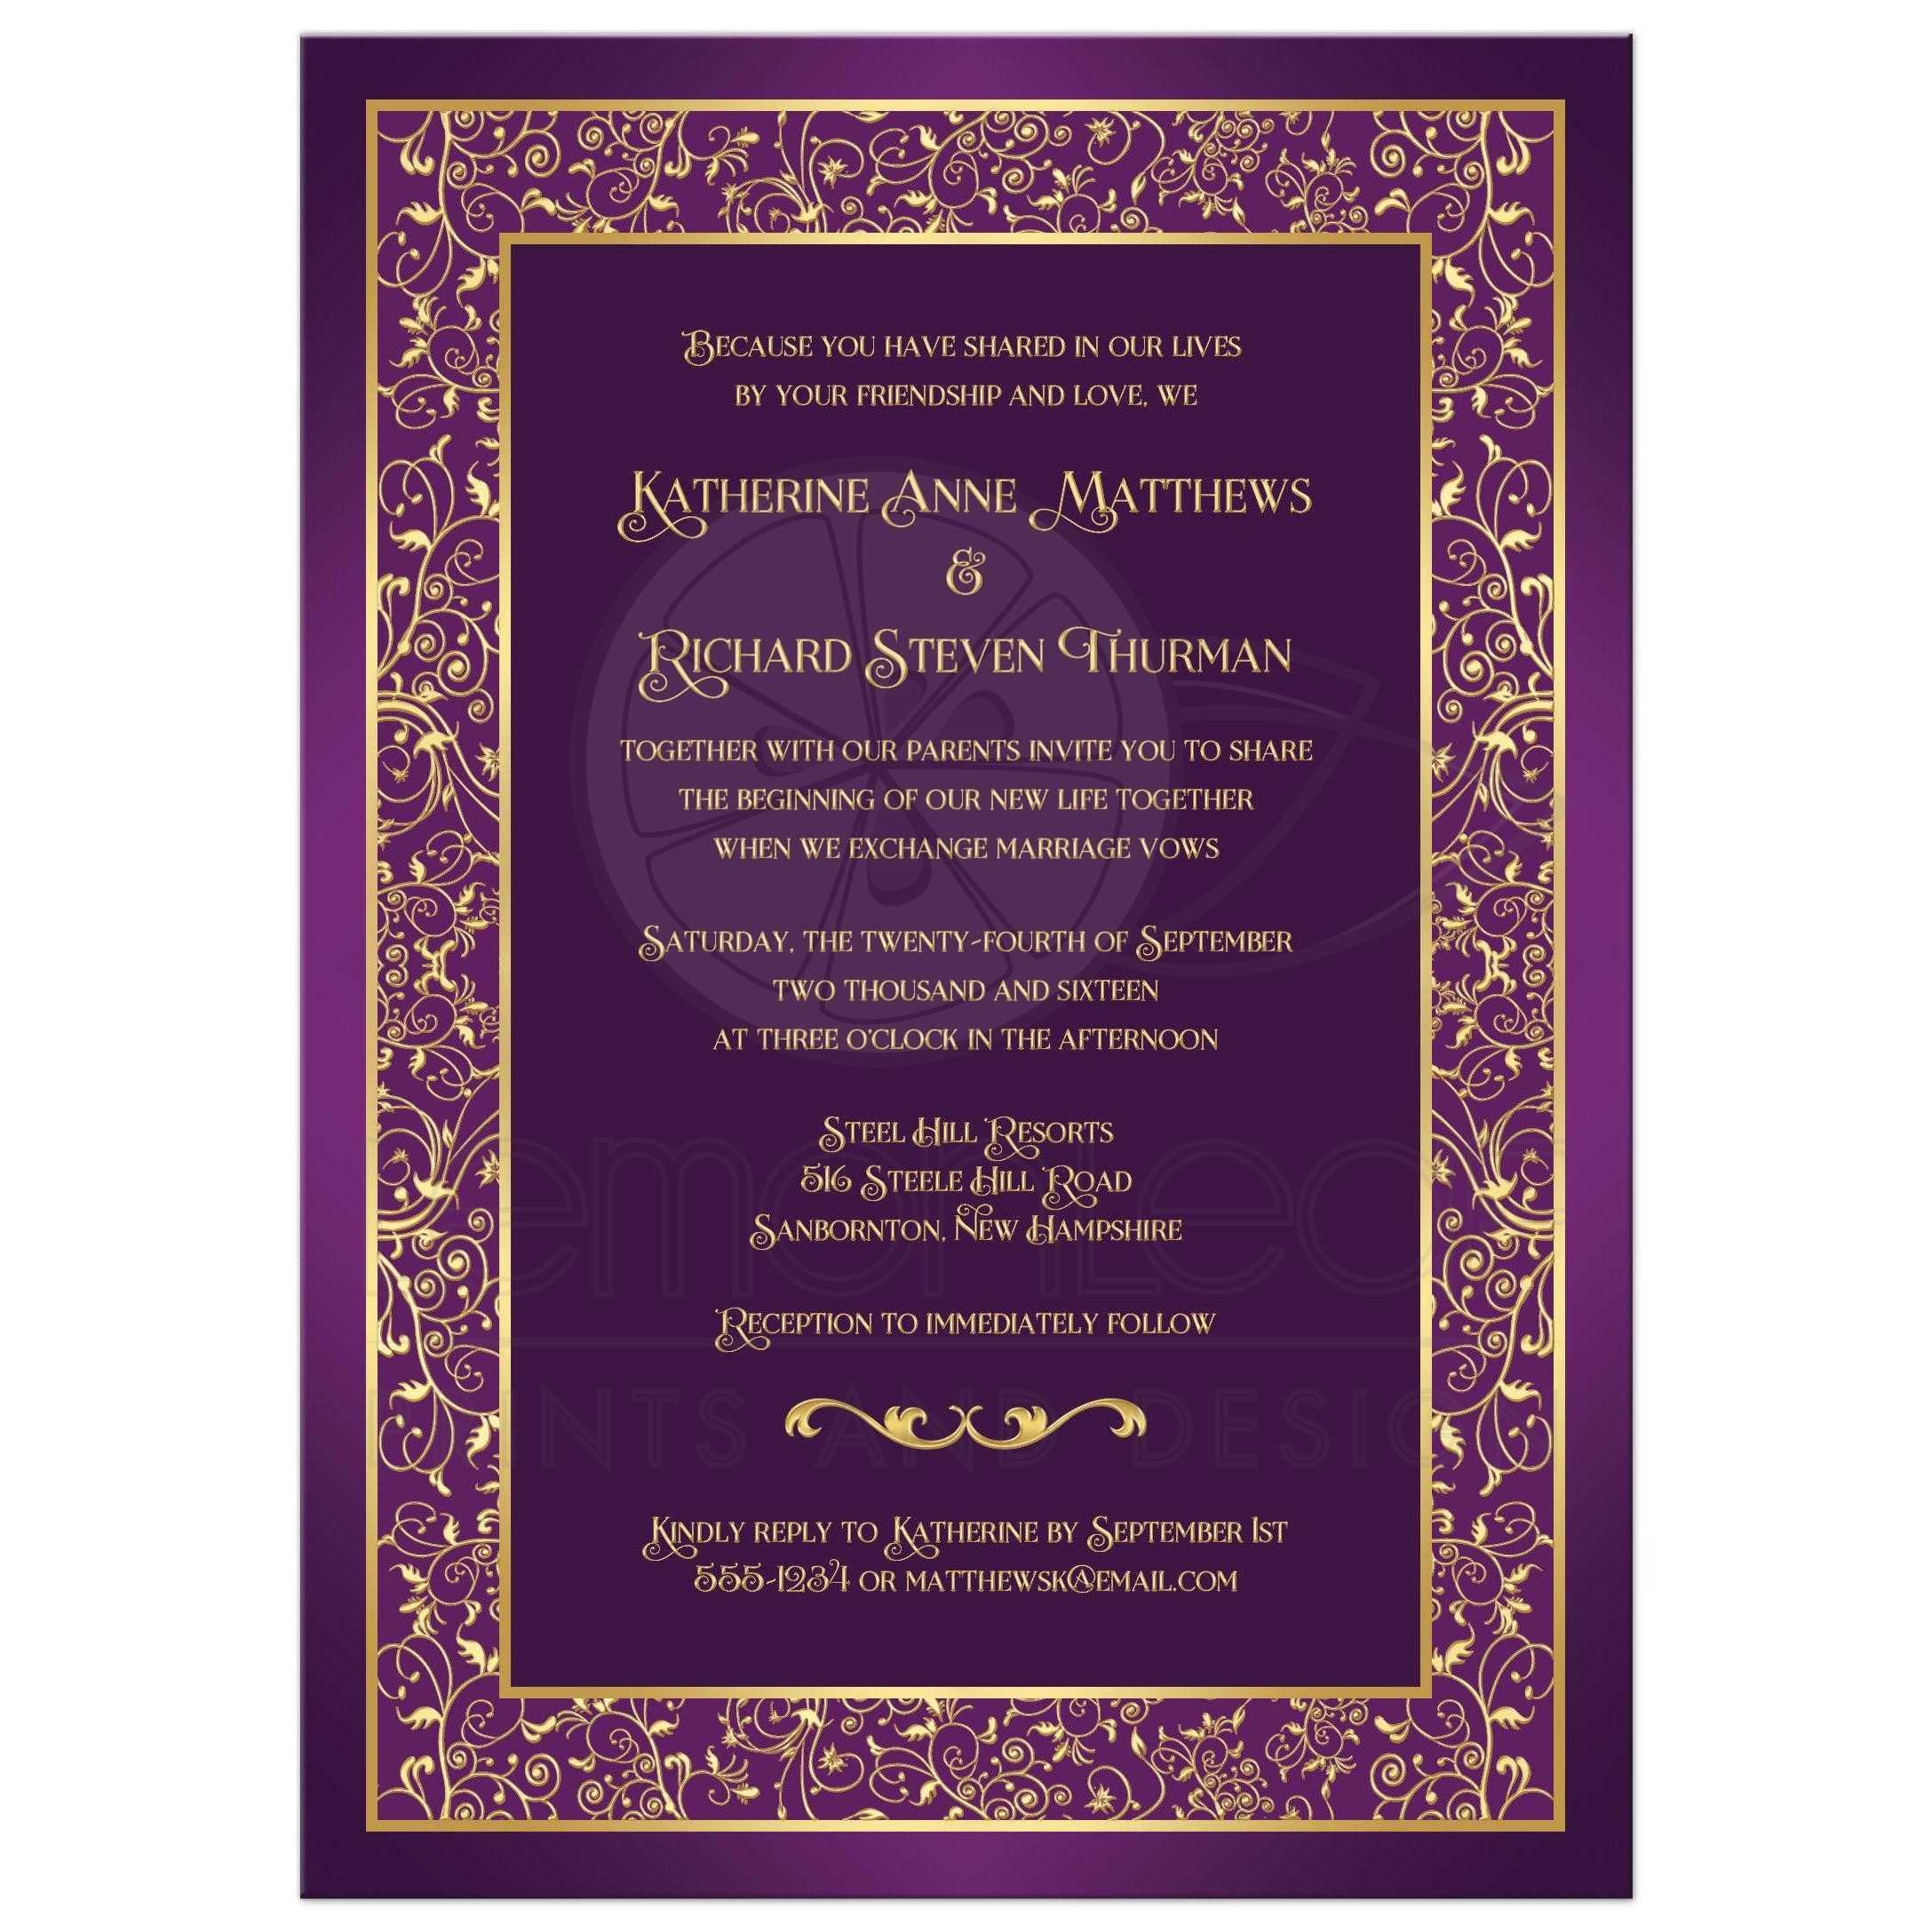 Purple And Gold Wedding Invitation With Floral Scrolled Border ...